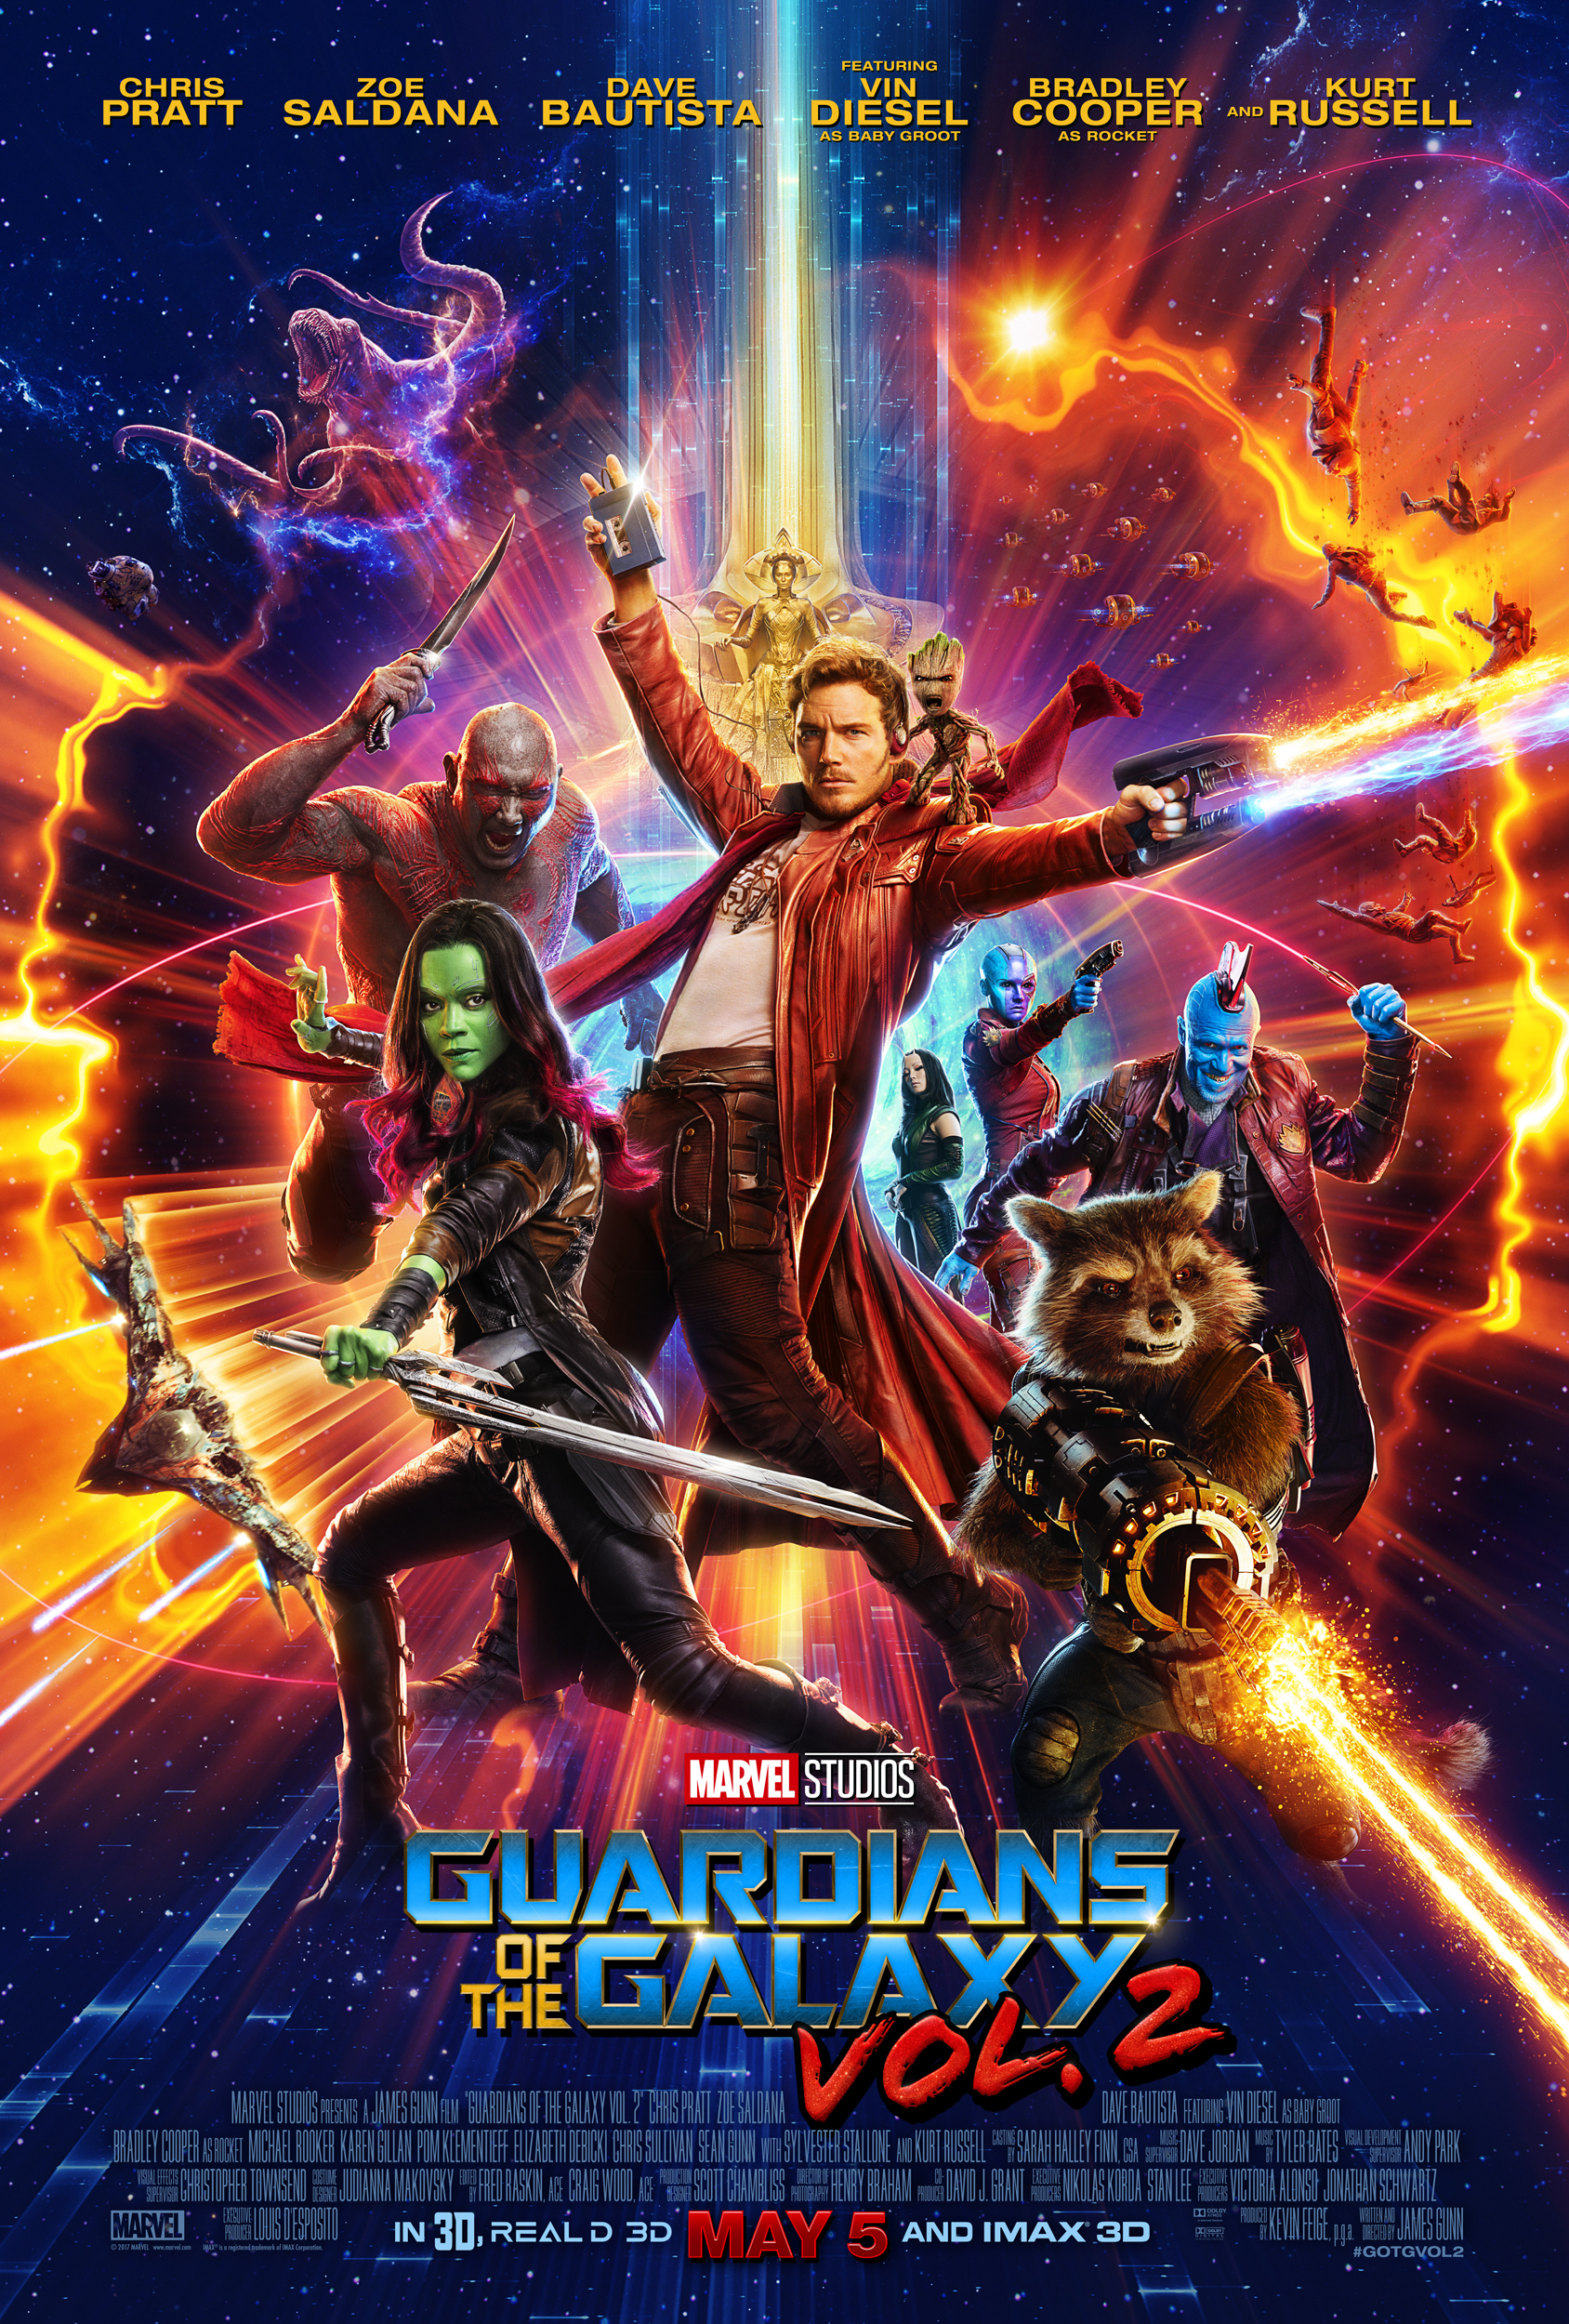 GUARDIANS OF THE GALAXY VOL. 2 is EPIC || #GOTGVOL2